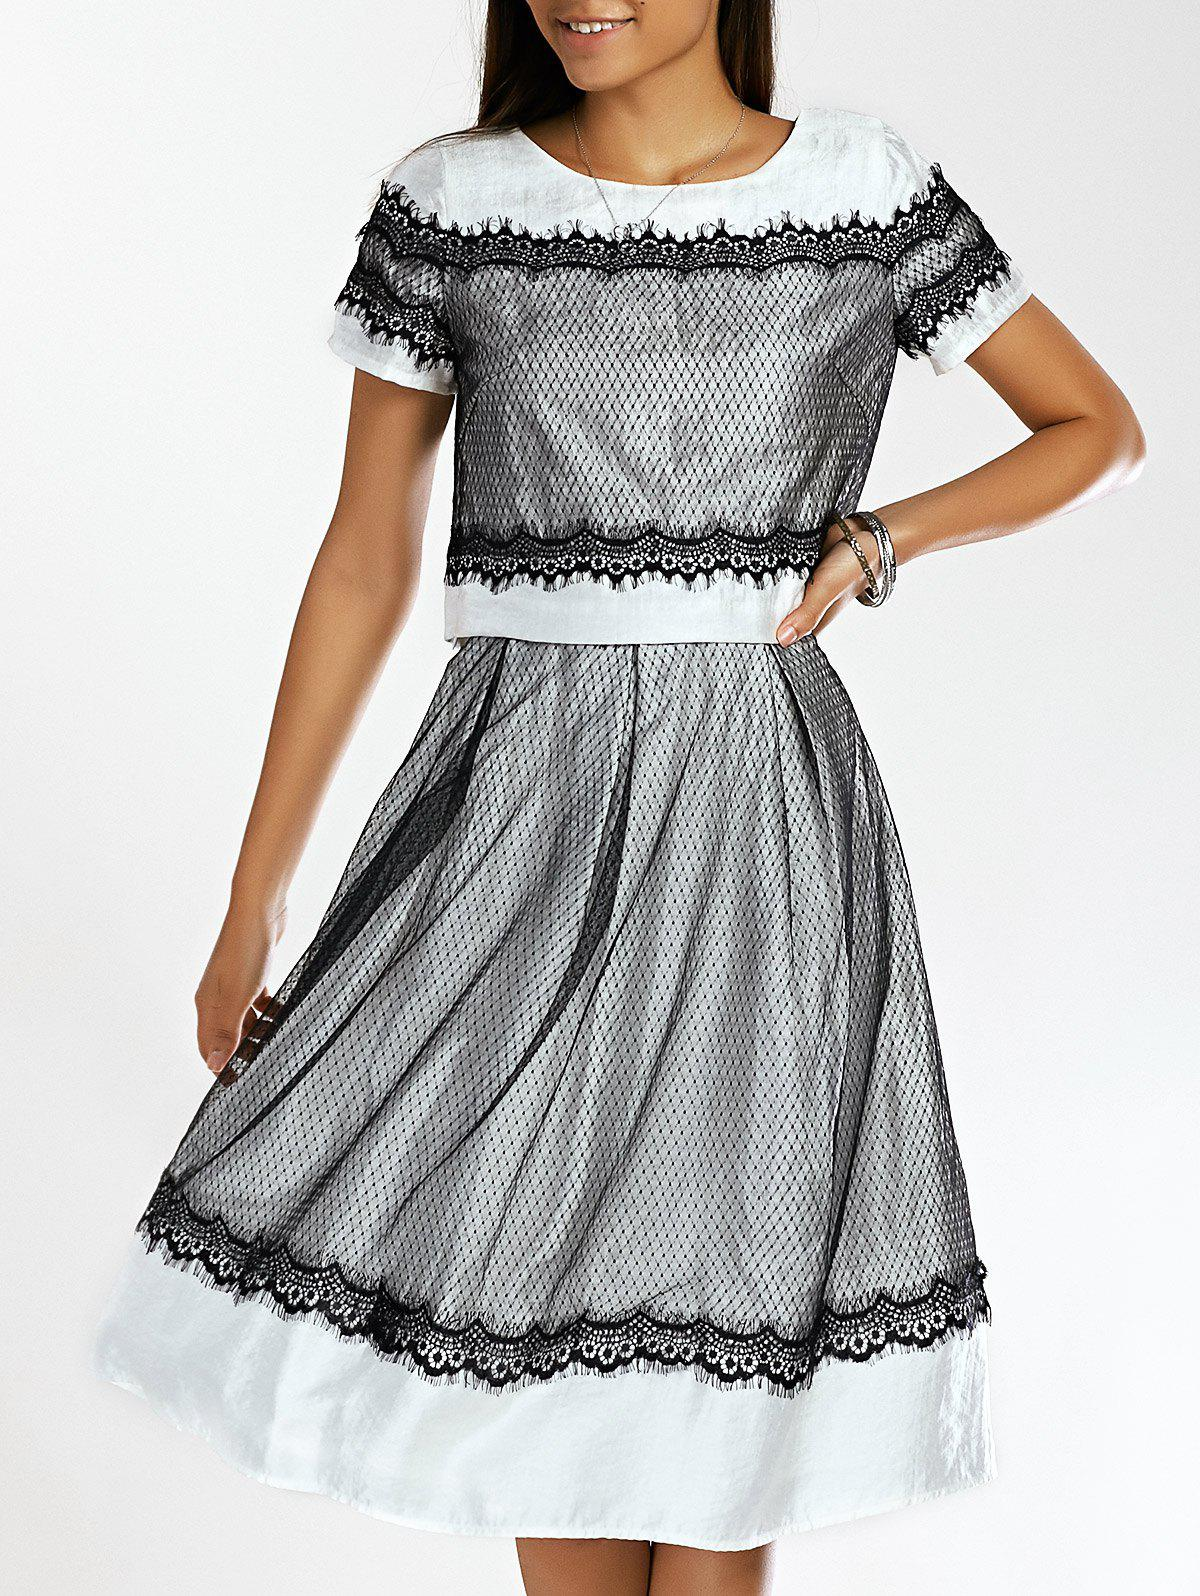 Stylish Women's Jewel Neck Lace Top and A-Line SKirt Set Dress